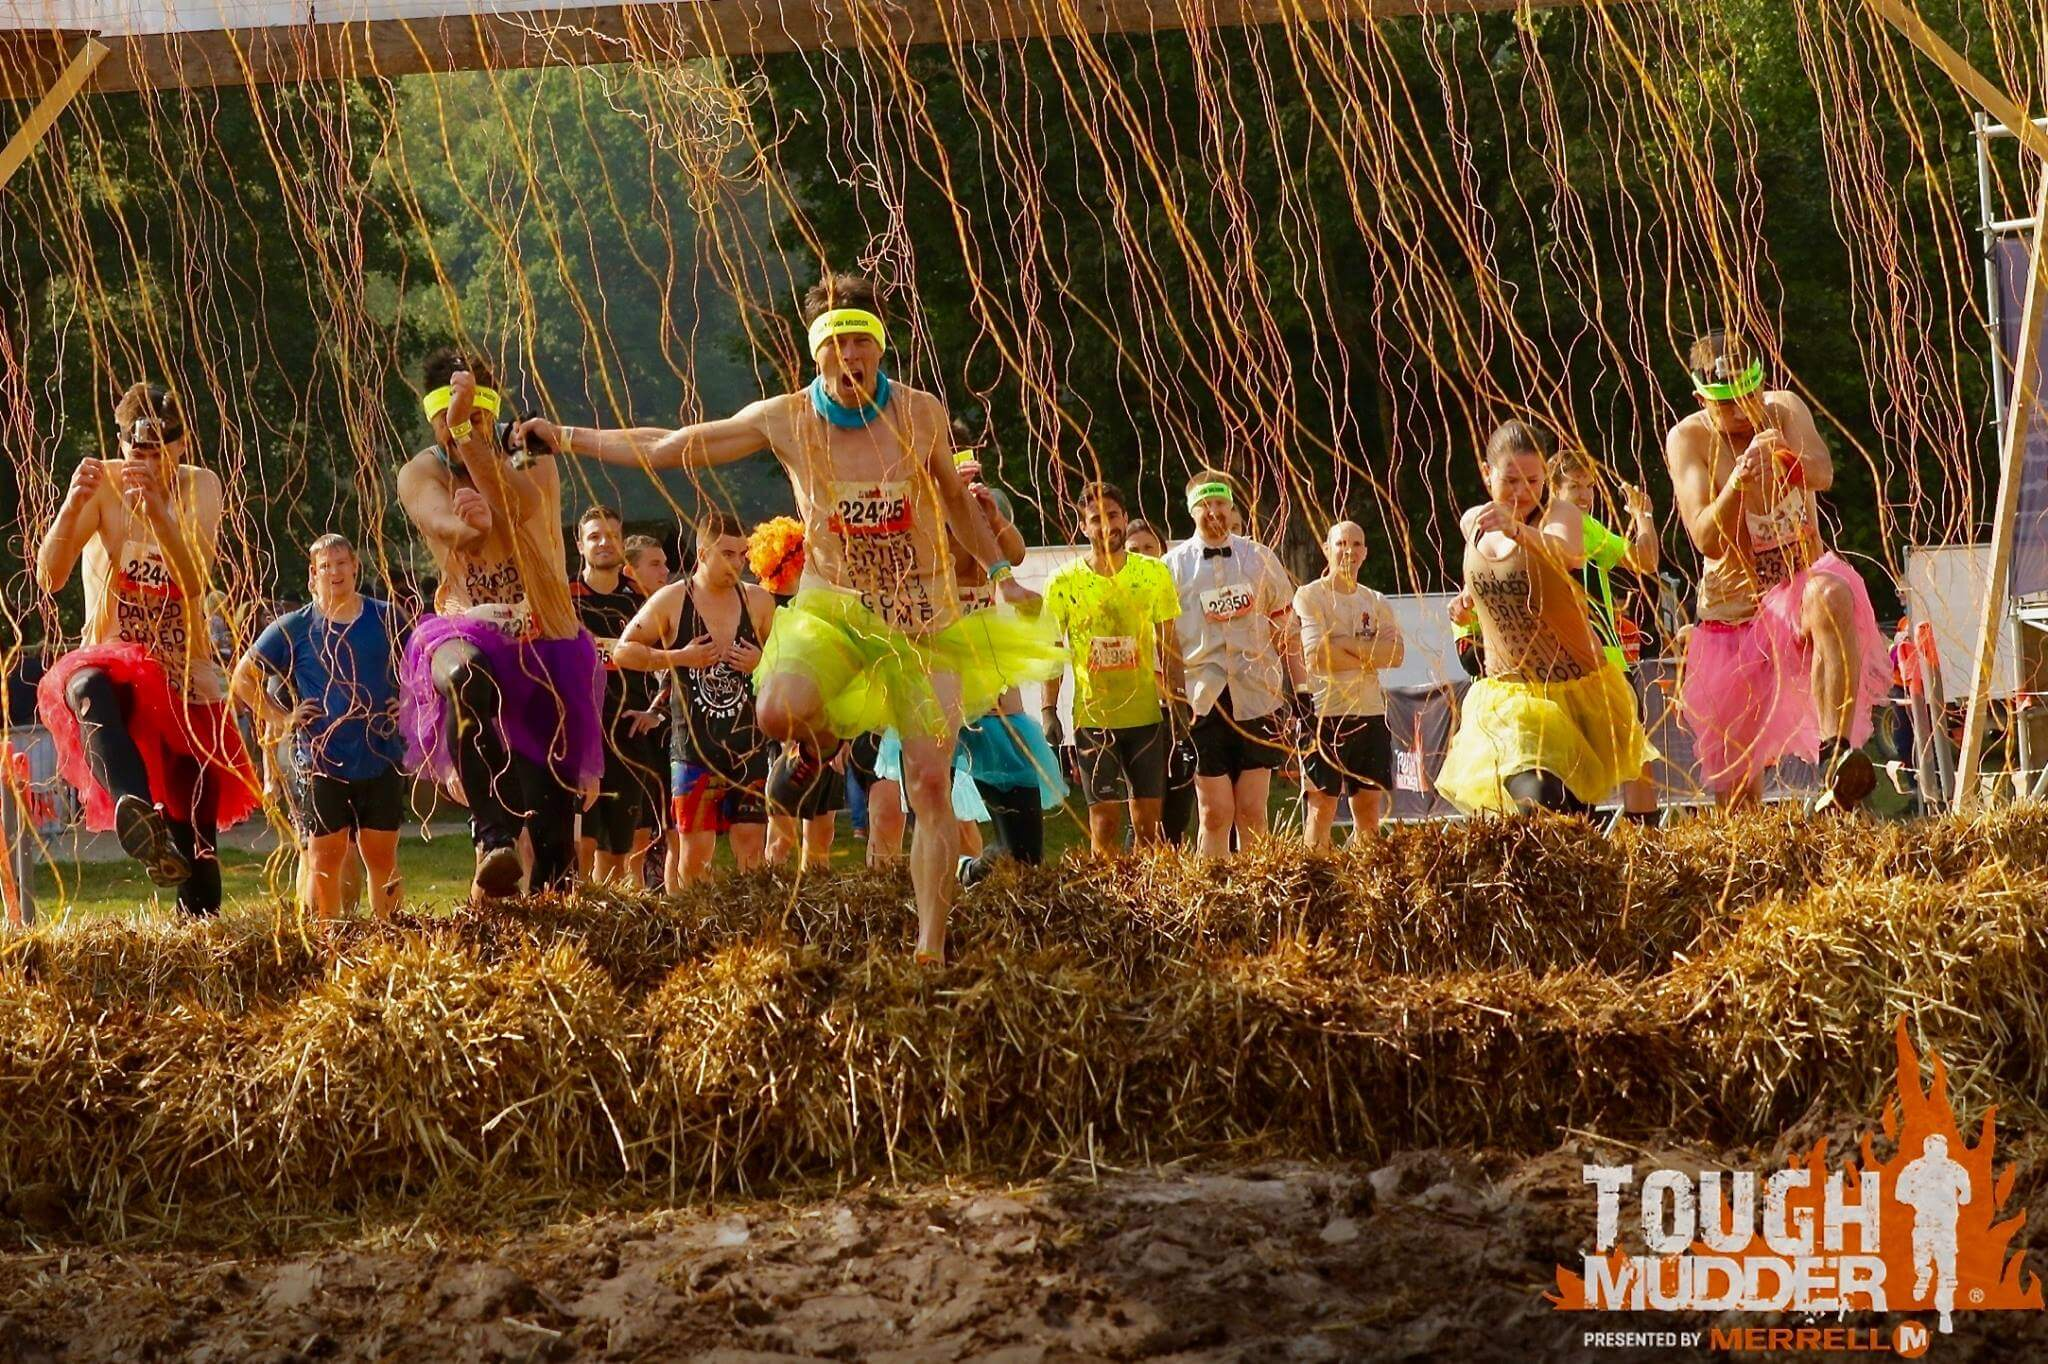 """Just how muddy will Germans go?"" - Wie Tough Mudder in Deutschland zum Erfolg wurde"